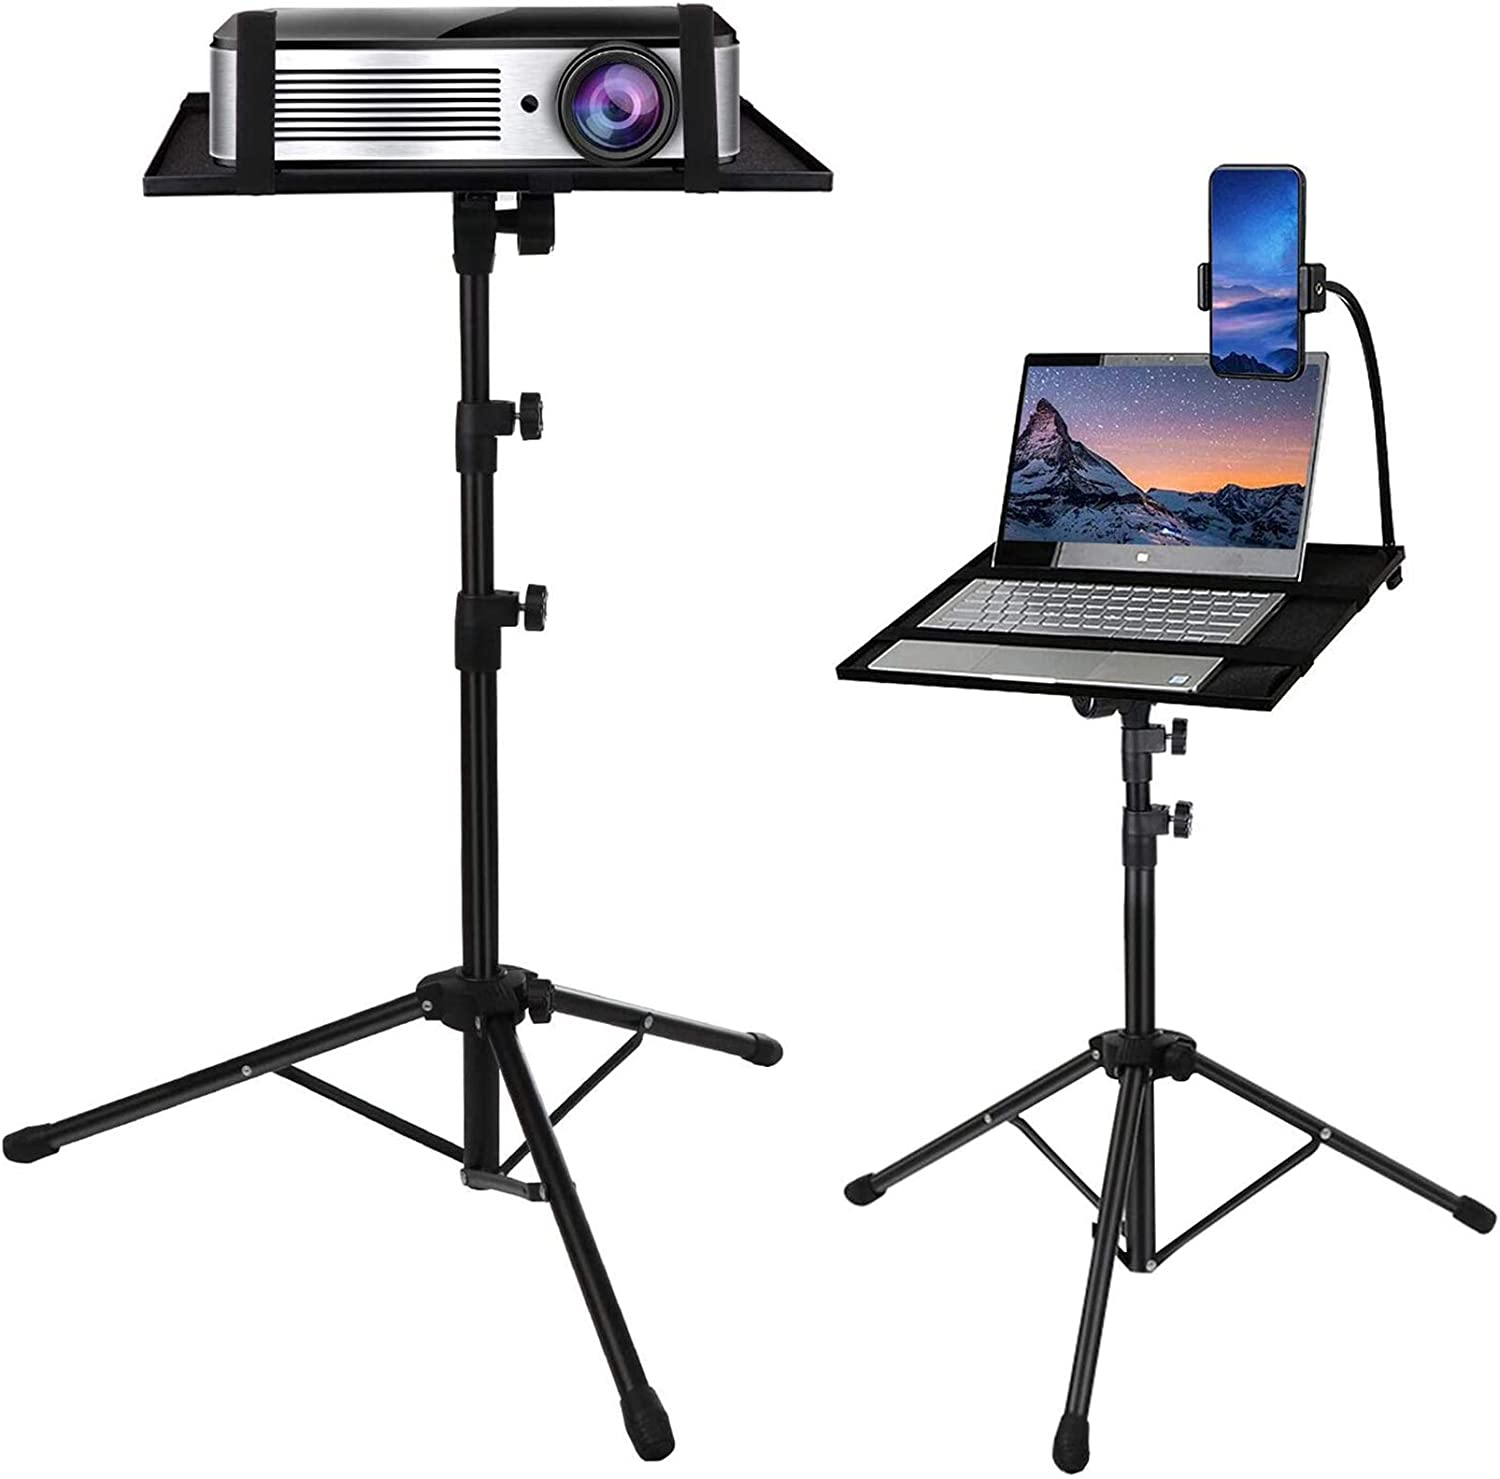 Laptop Tripod, Laptop Stand Adjustable Height 17.7 to 42.7 Inch with Gooseneck Phone Holder, Portable Projector Stand Tripod, Detachable Computer DJ Equipment Holder Mount